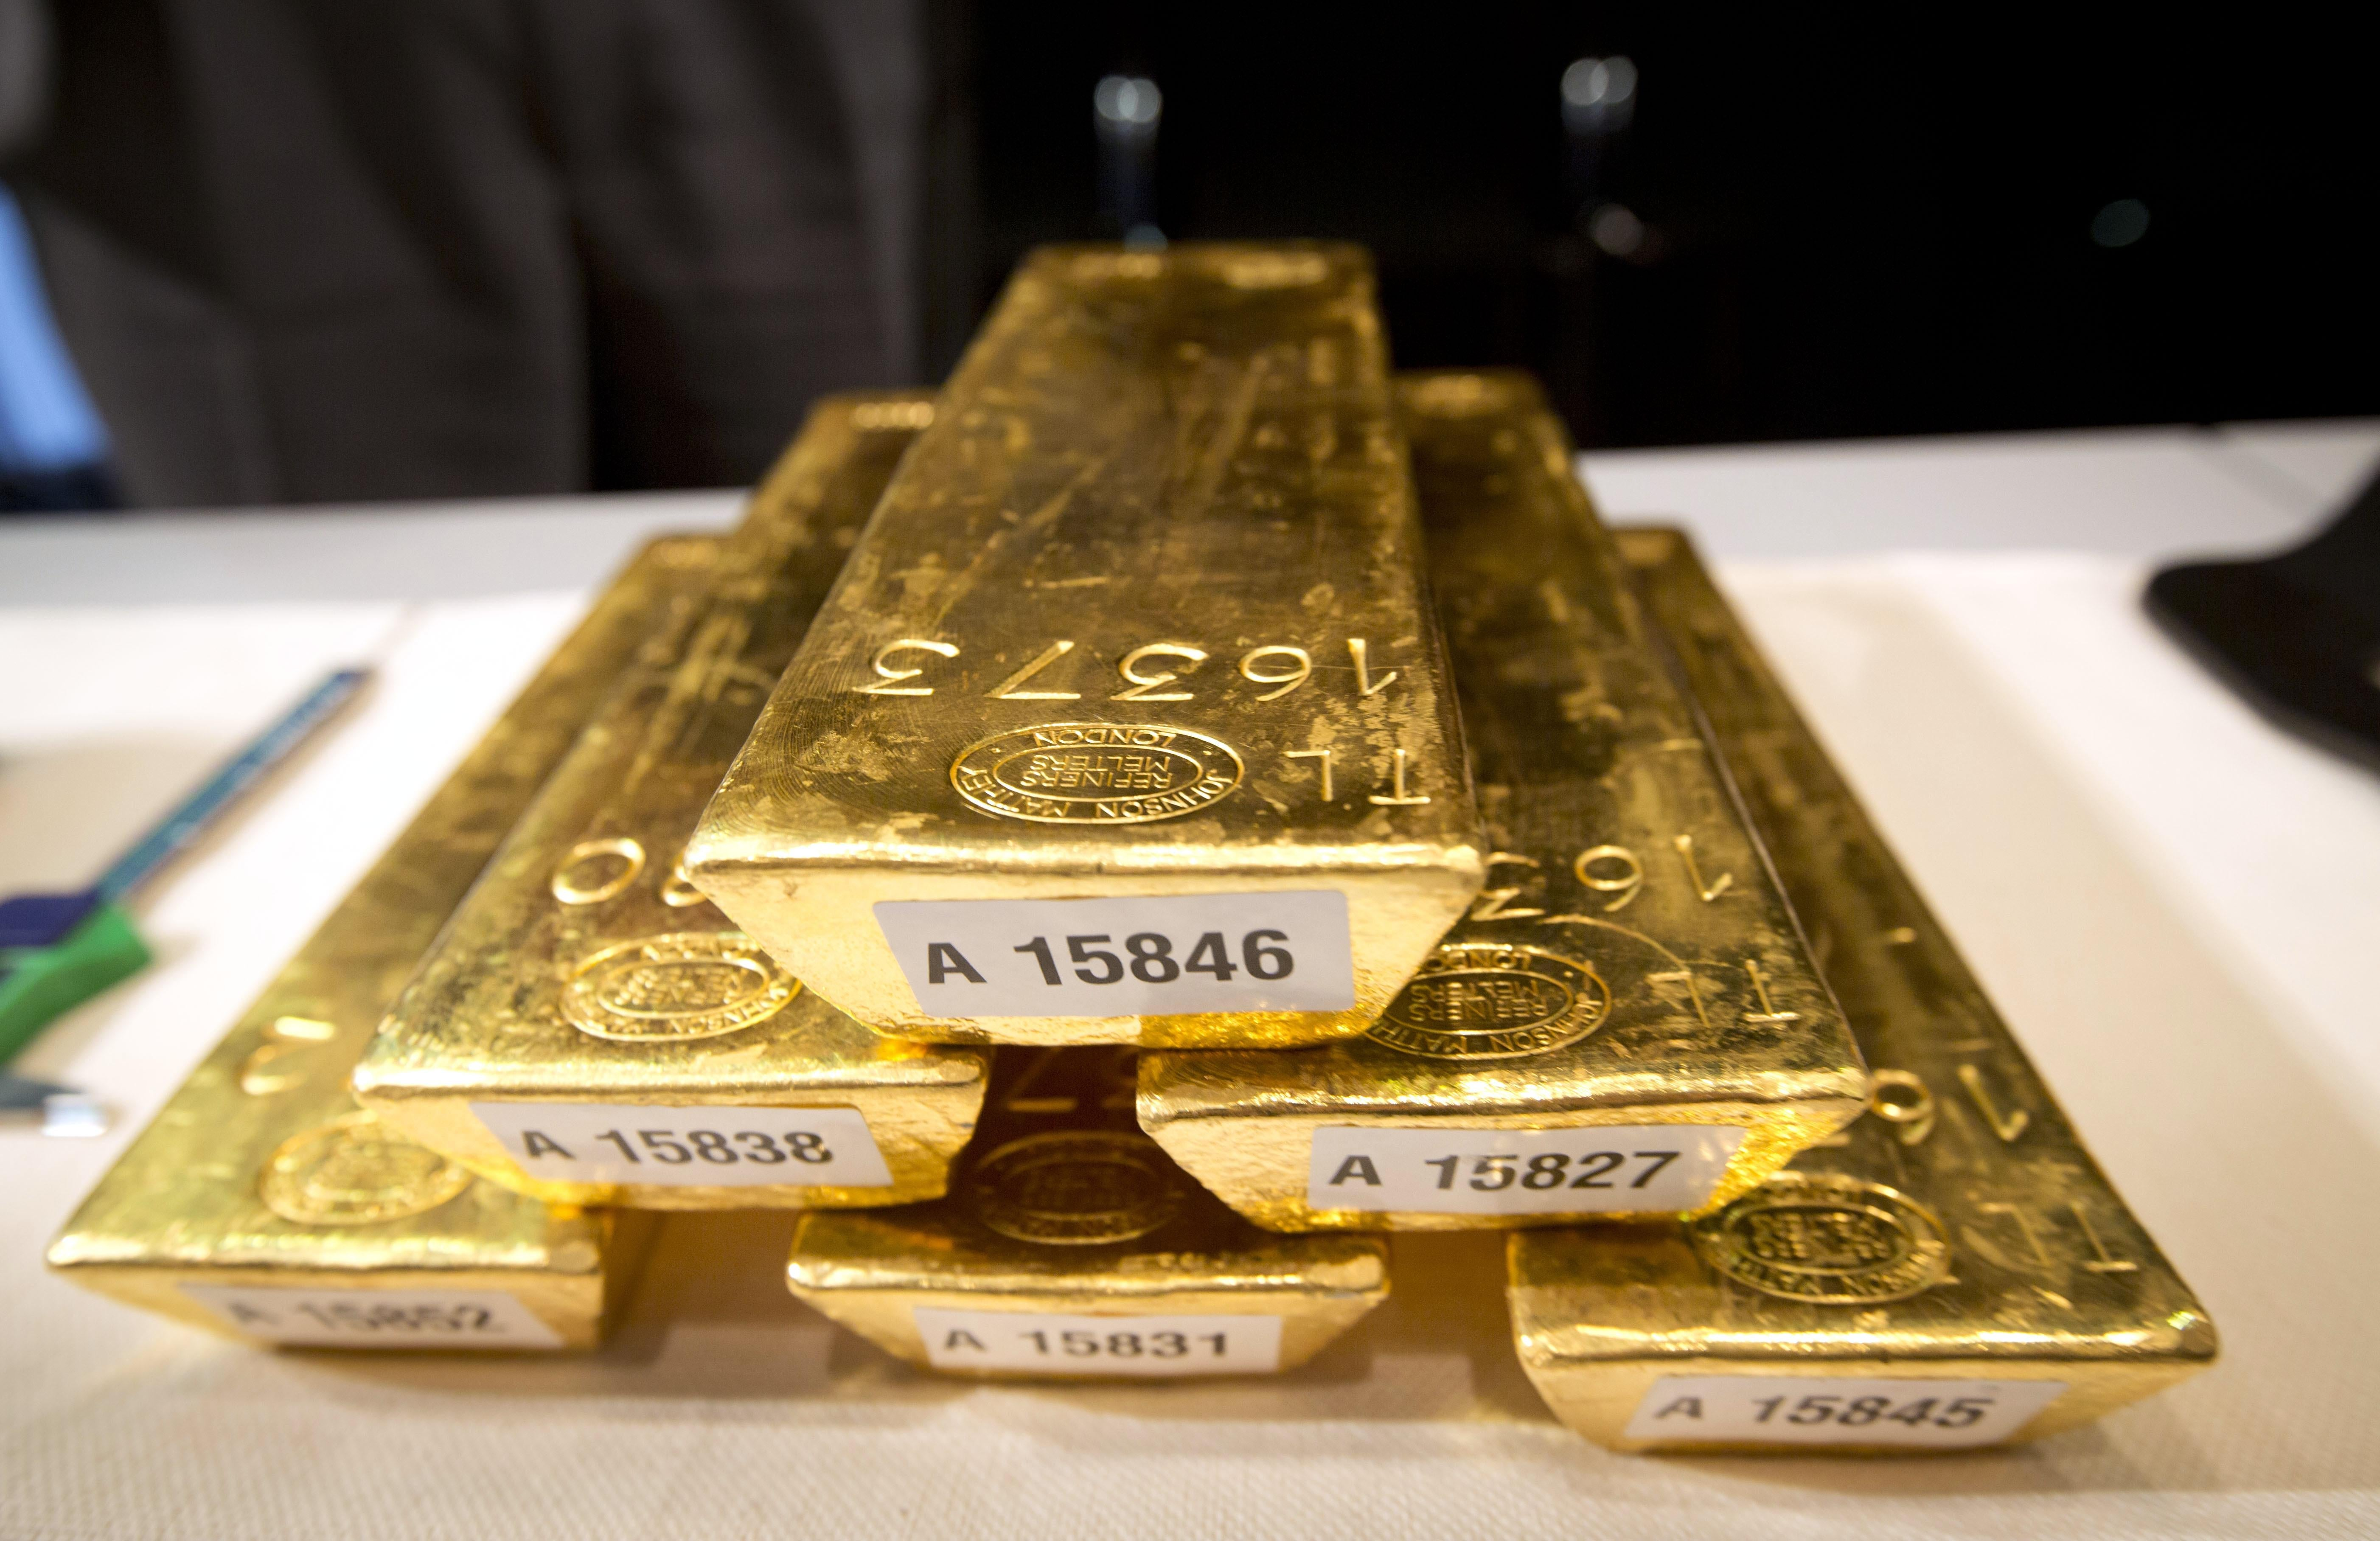 Bars of gold are piled up during a press conference at the German Federal Bank in Frankfurt am Main, Western Germany, on Jan. 16, 2013